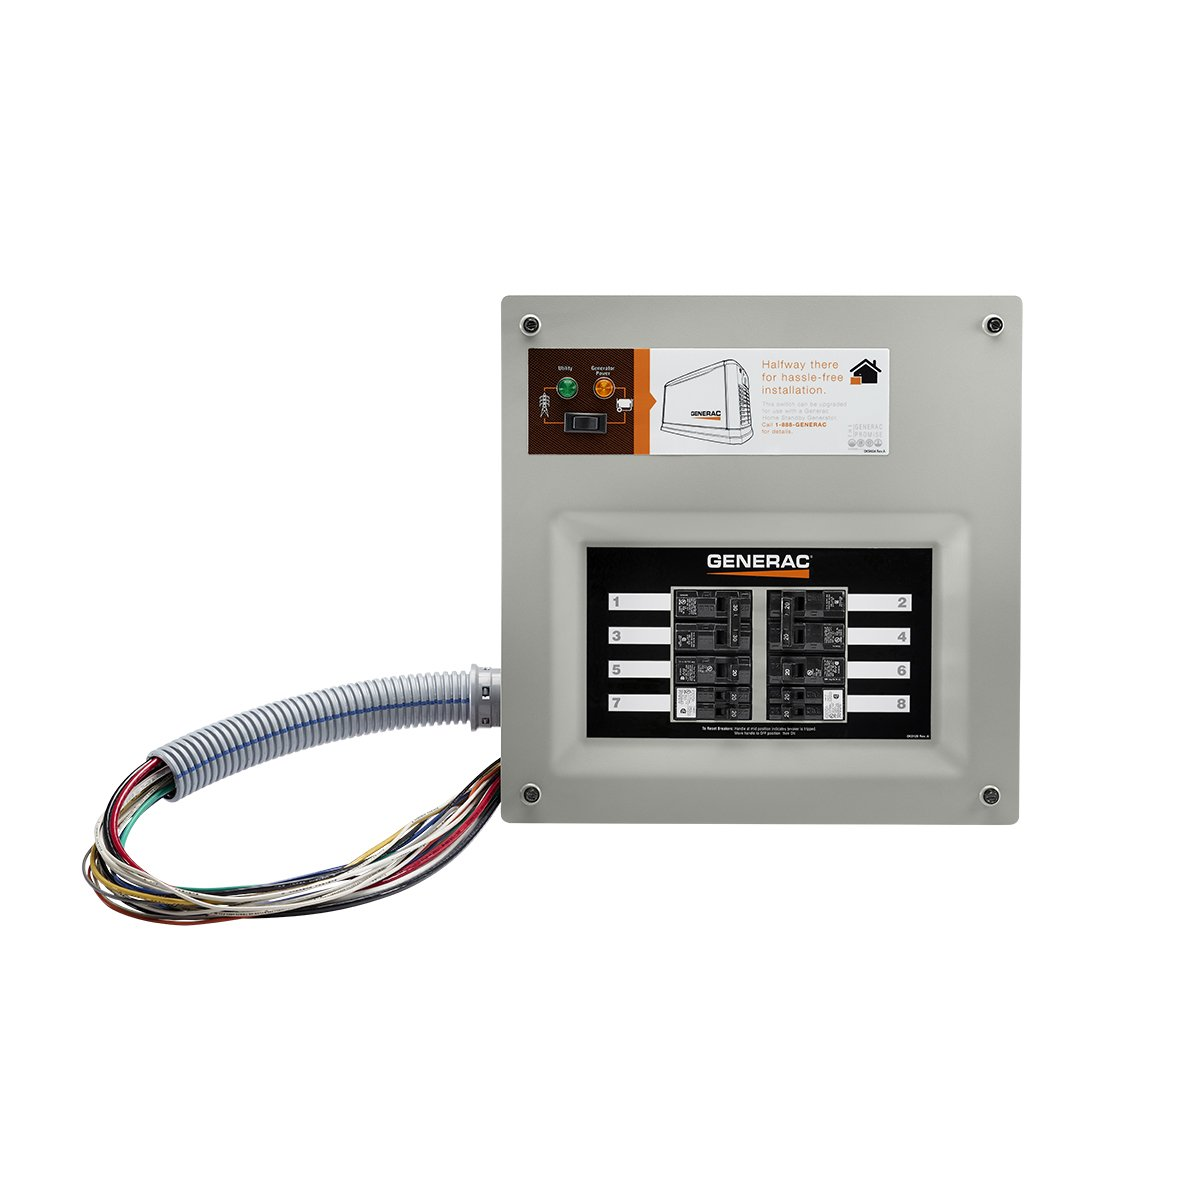 Generac 9854 HomeLink 50-Amp Indoor Pre-wired Upgradeable Manual Transfer Switch for 10-16 circuits